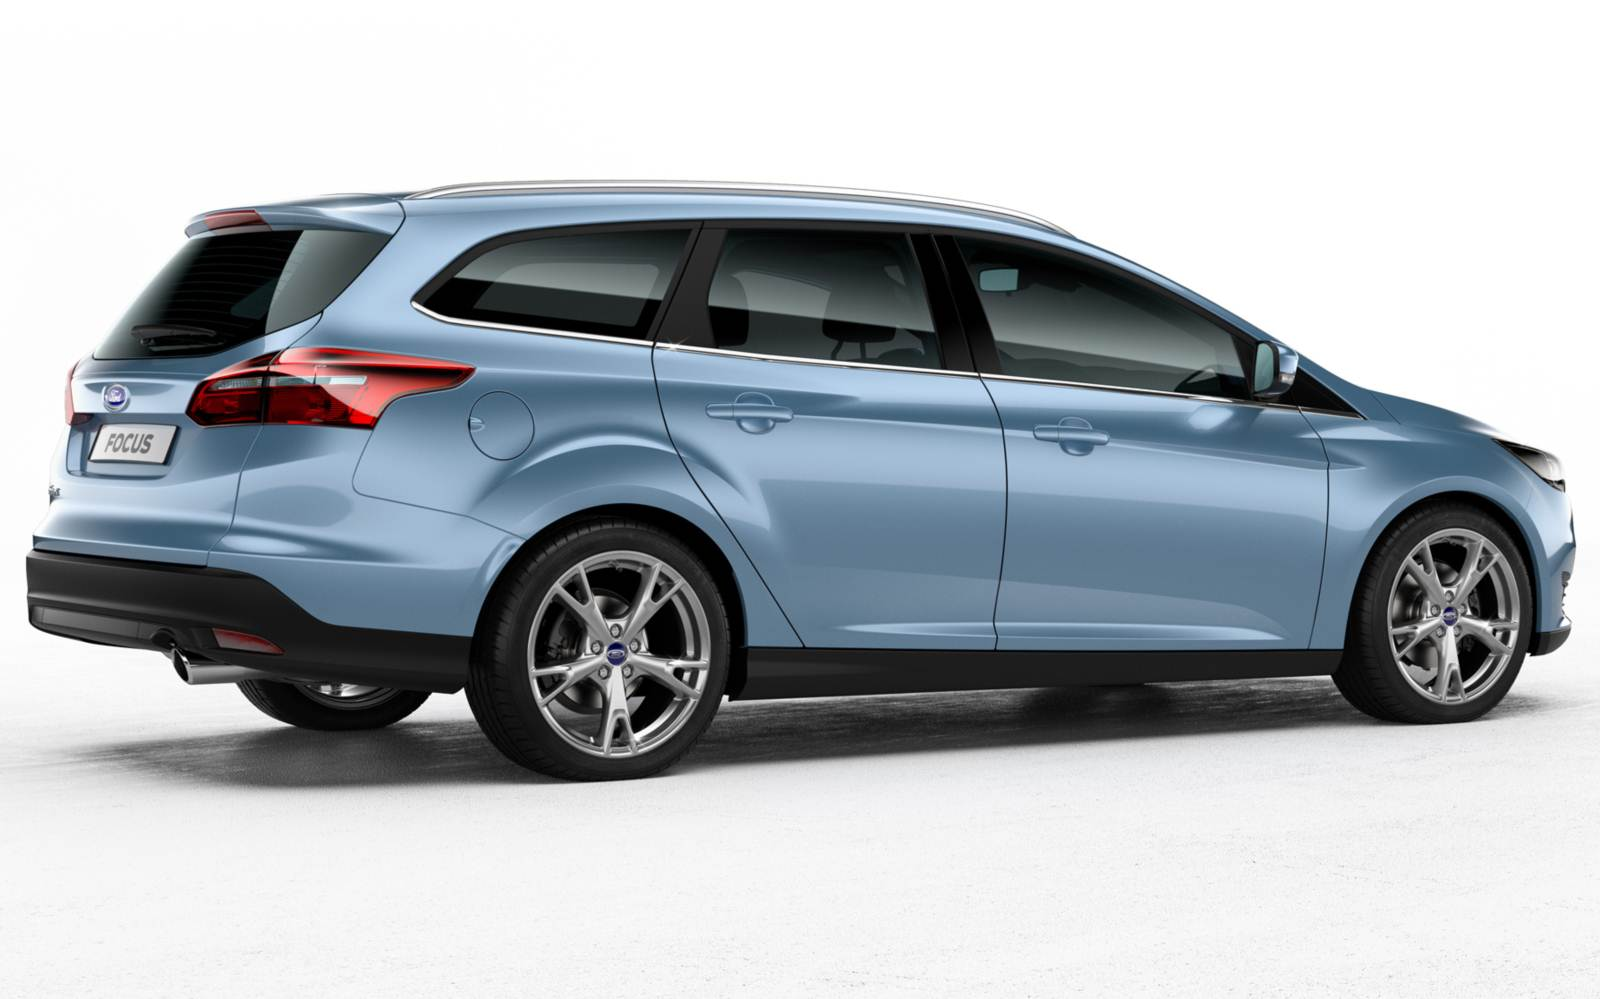 Novo Ford Focus 2015: fotos oficiais do modelo com facelift